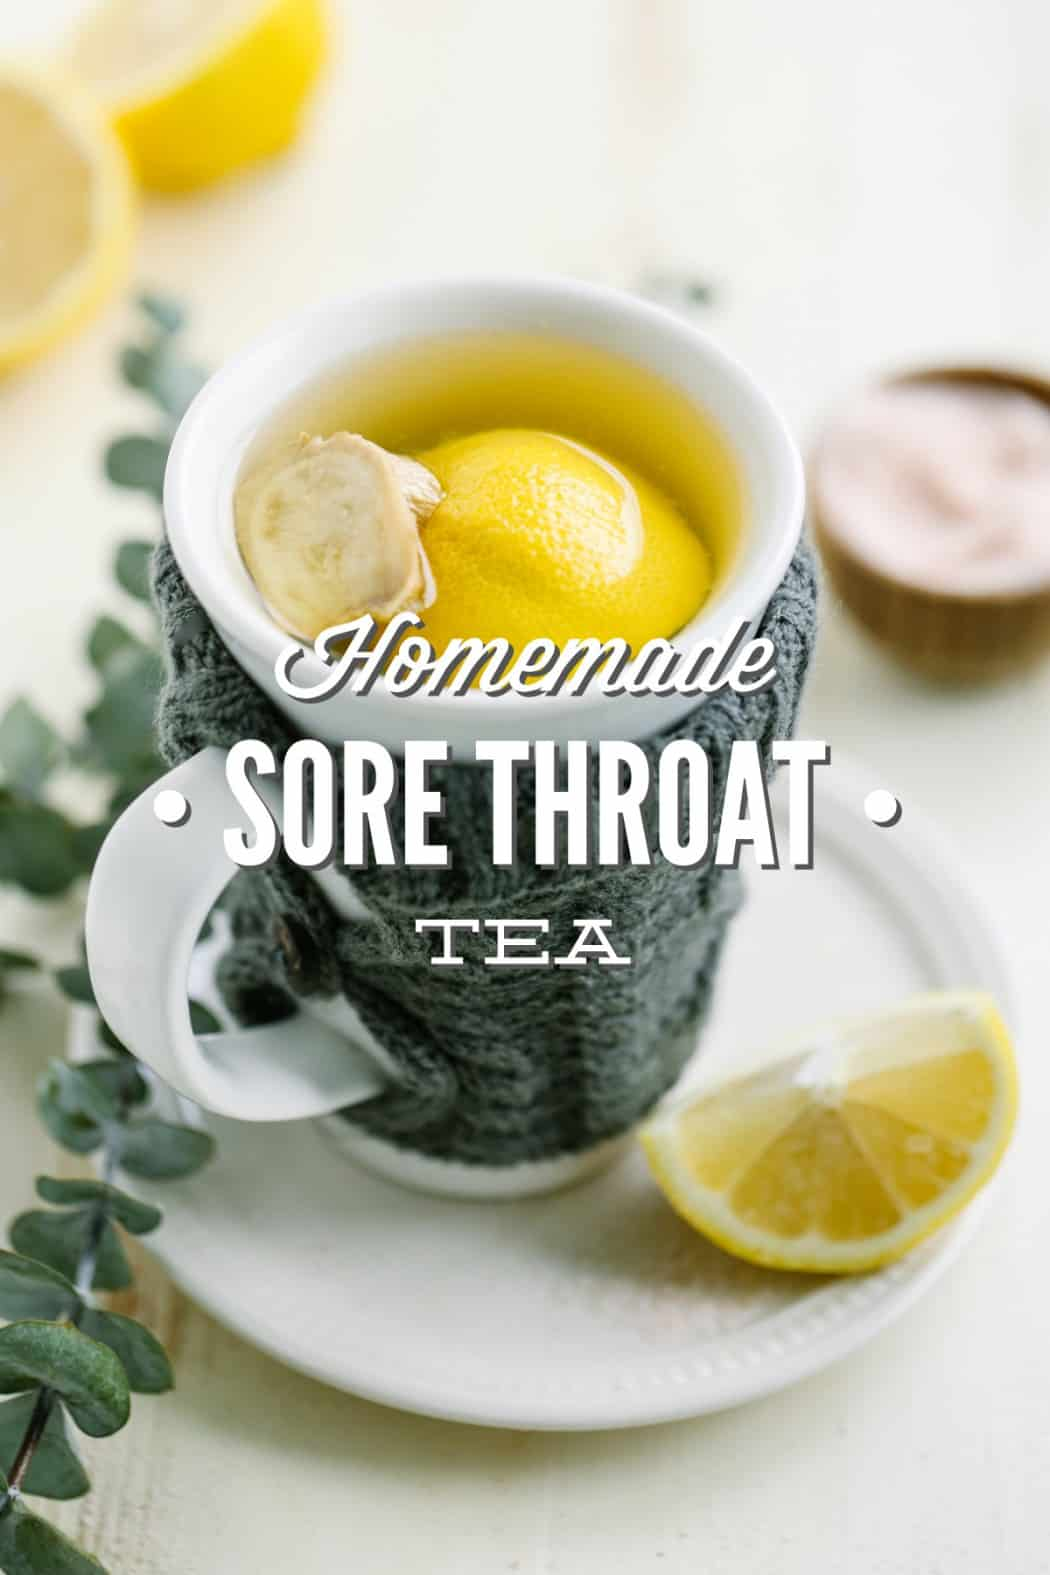 Homemade sore throat tea